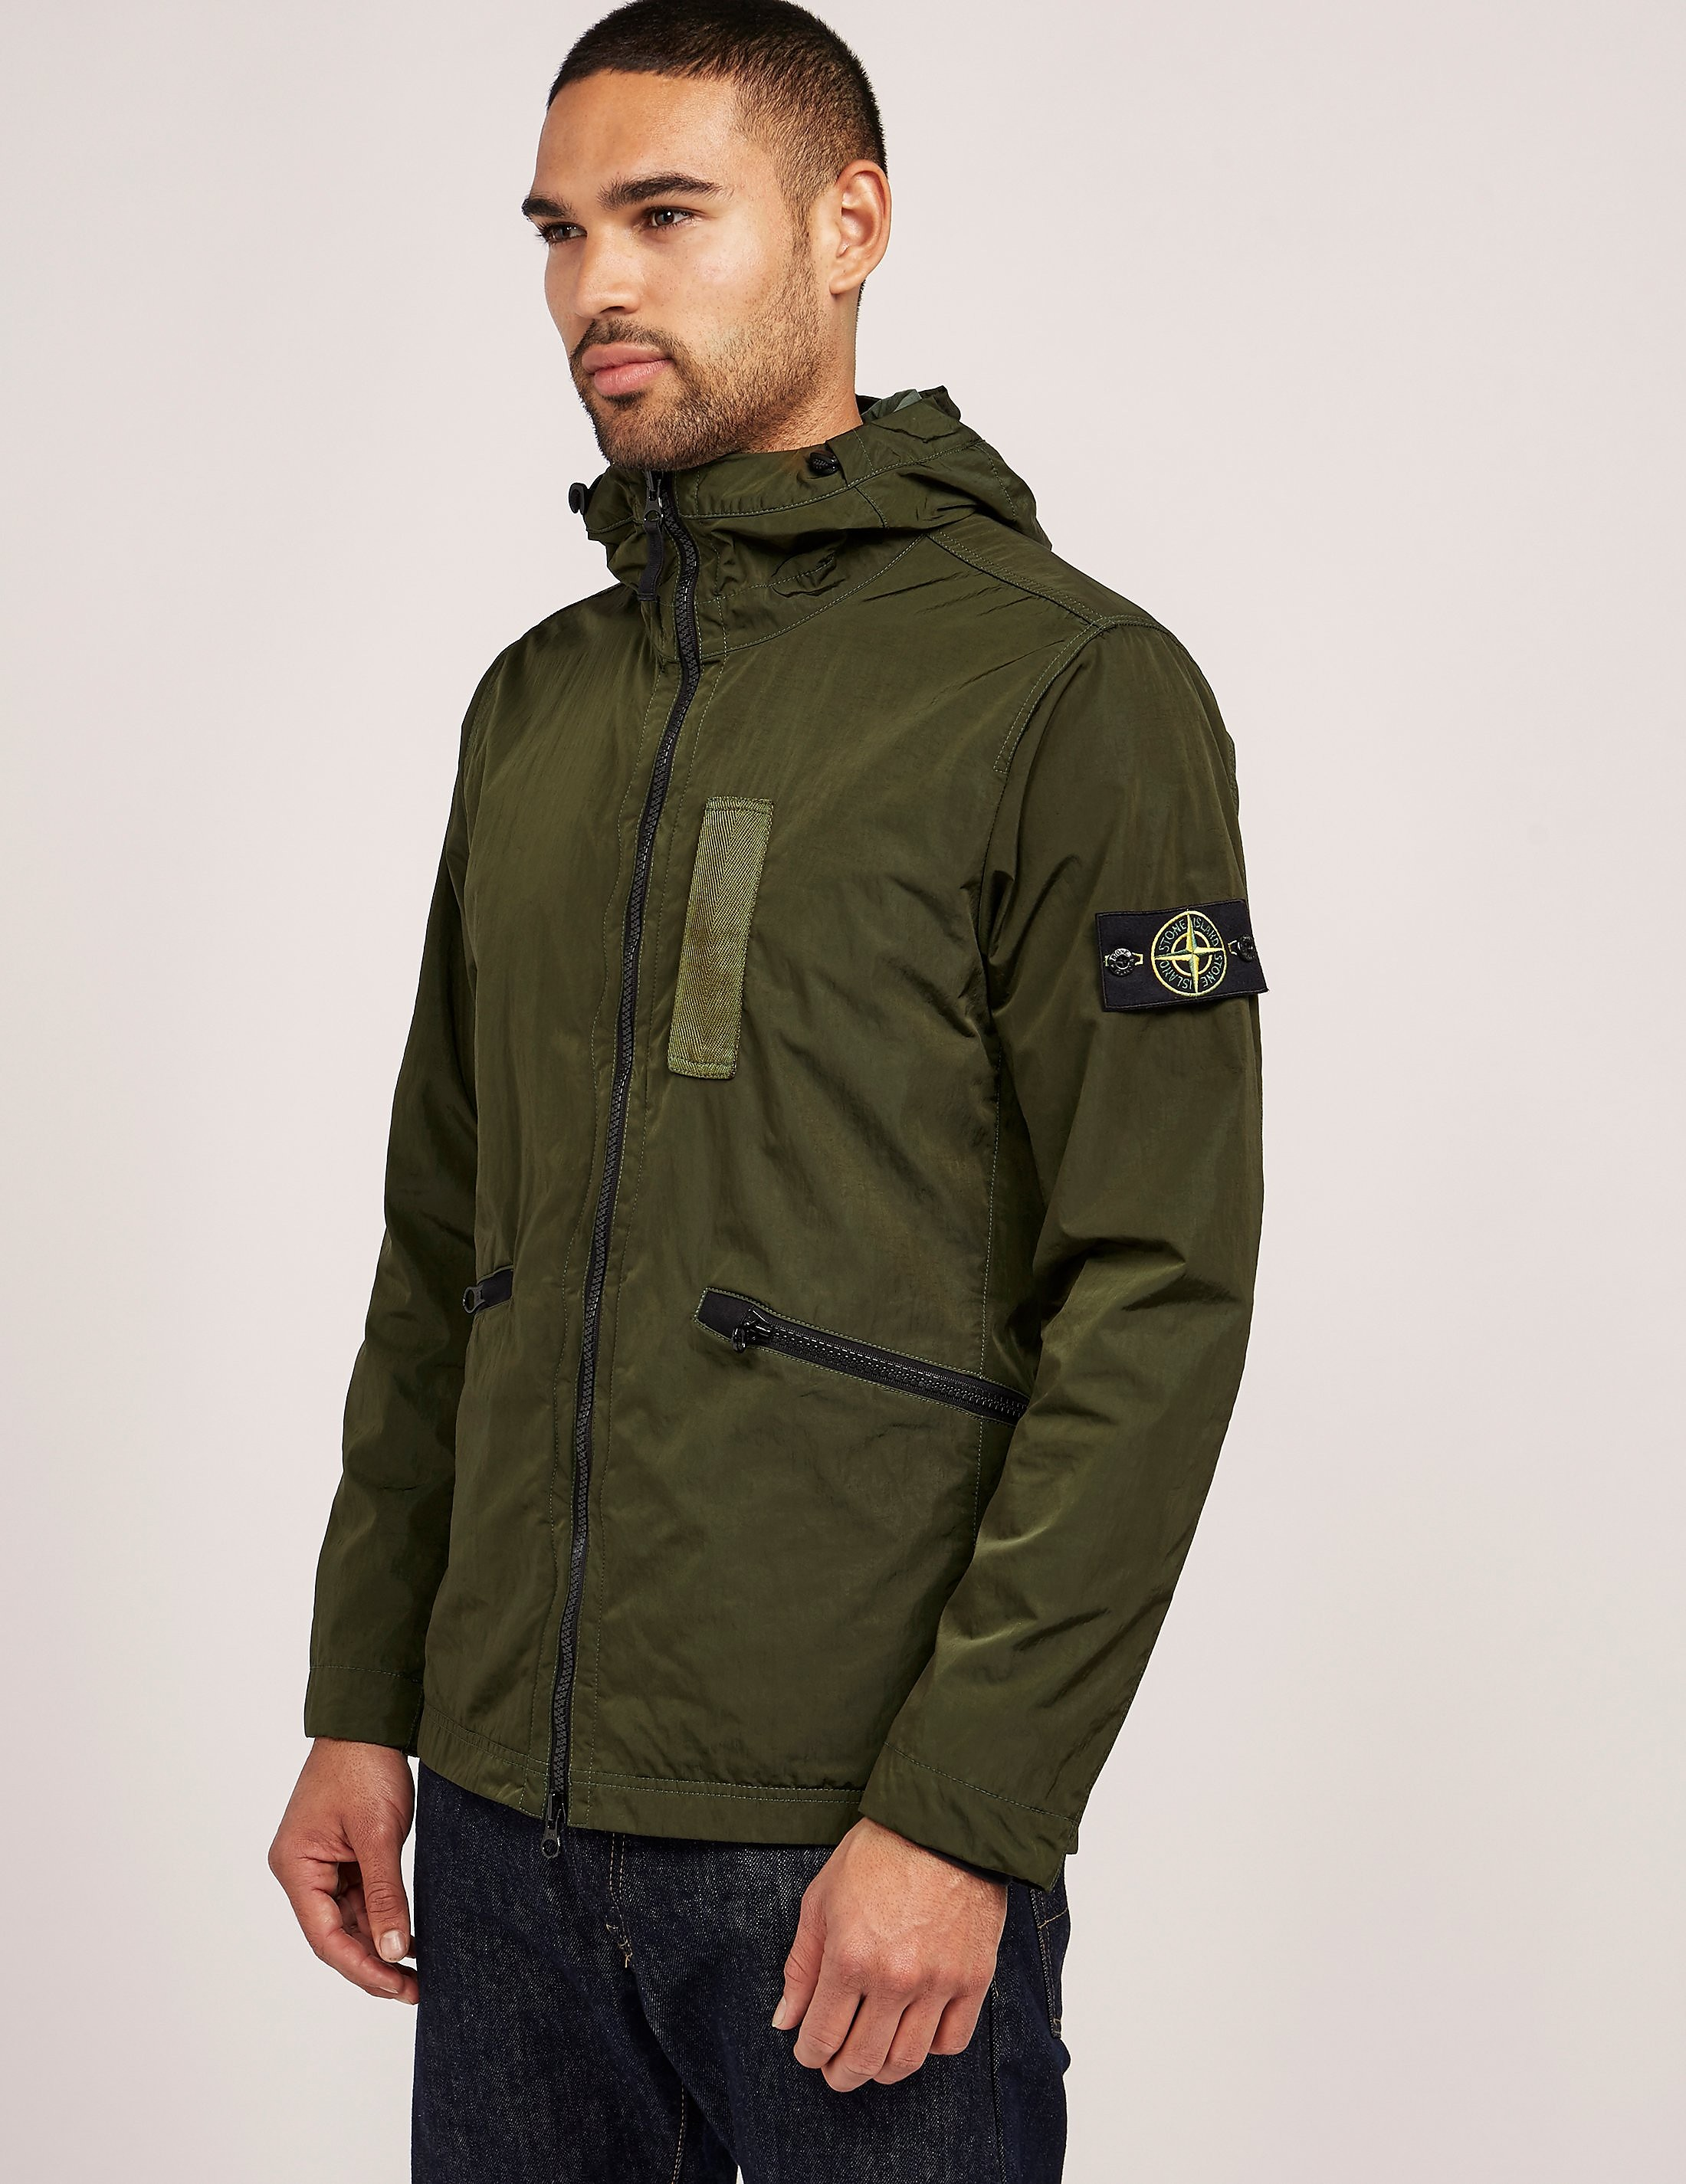 Stone Island Hooded Jacket